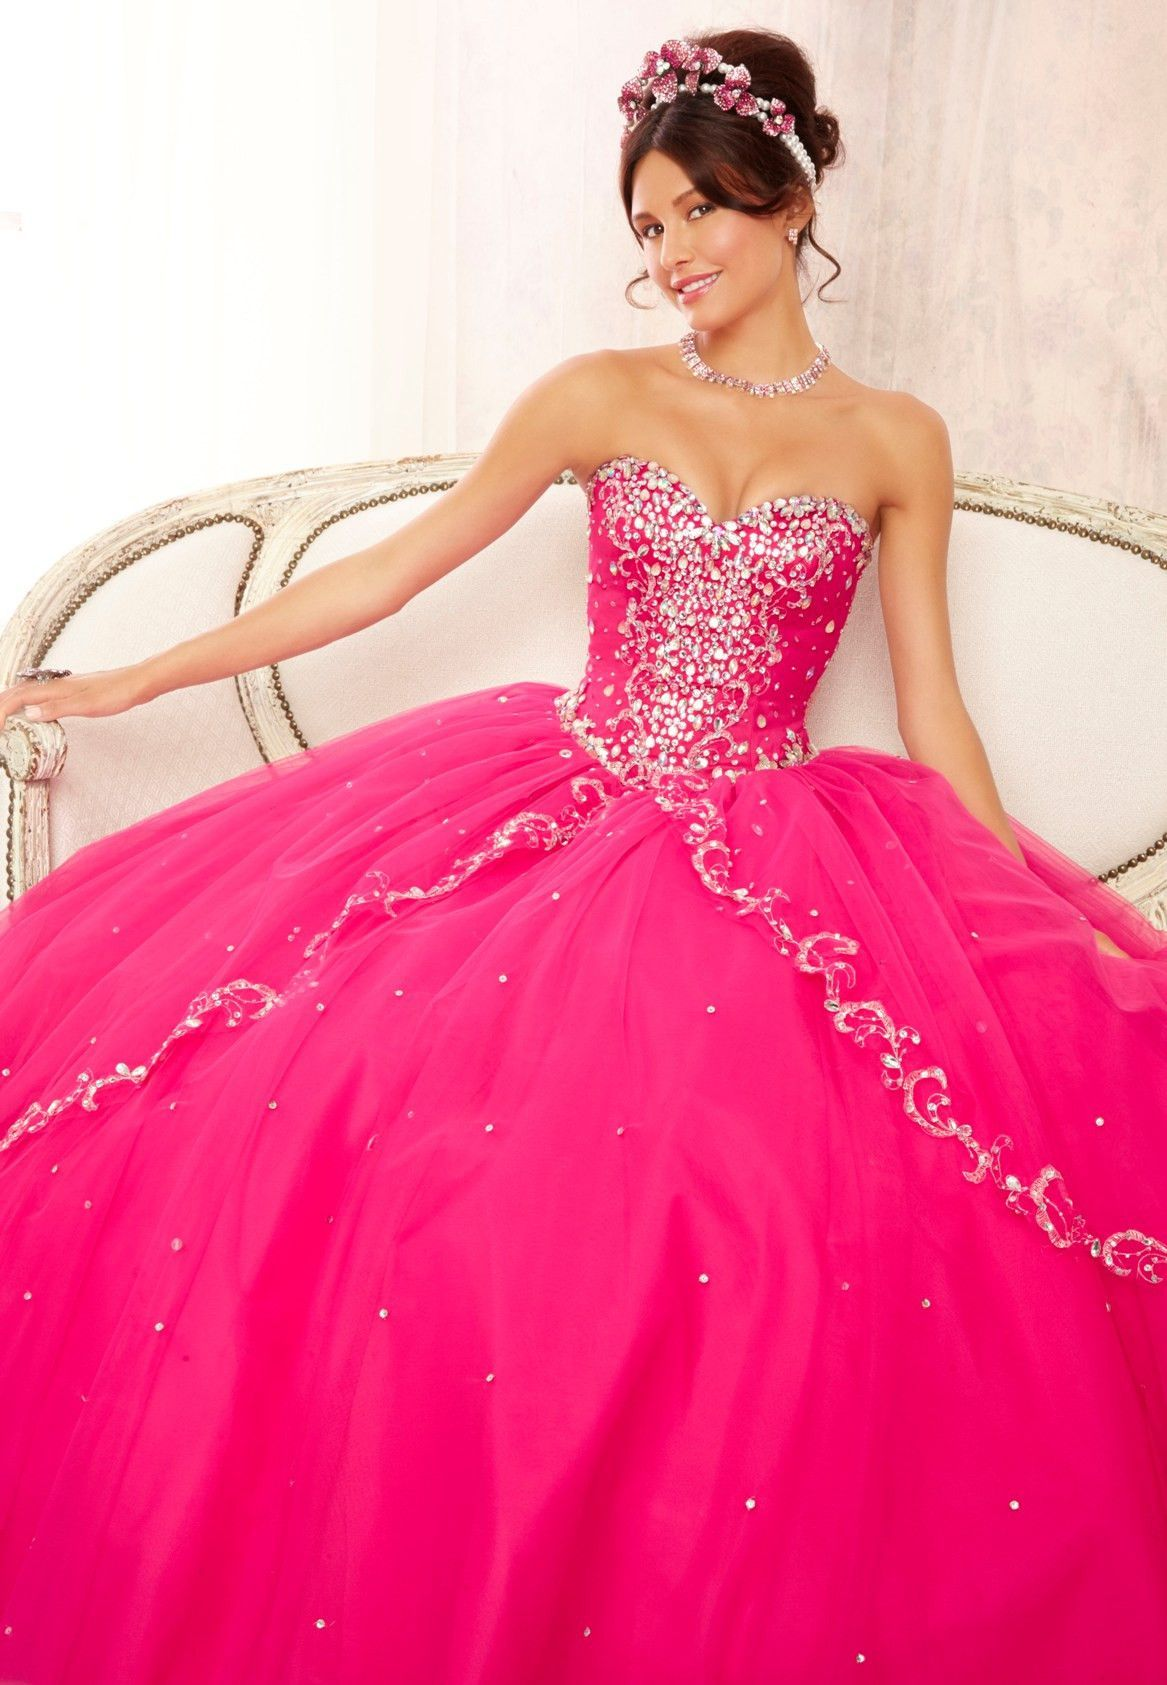 Mori Lee Quinceanera Dress 88088 | Pinterest | Quinceañera, 15 años ...